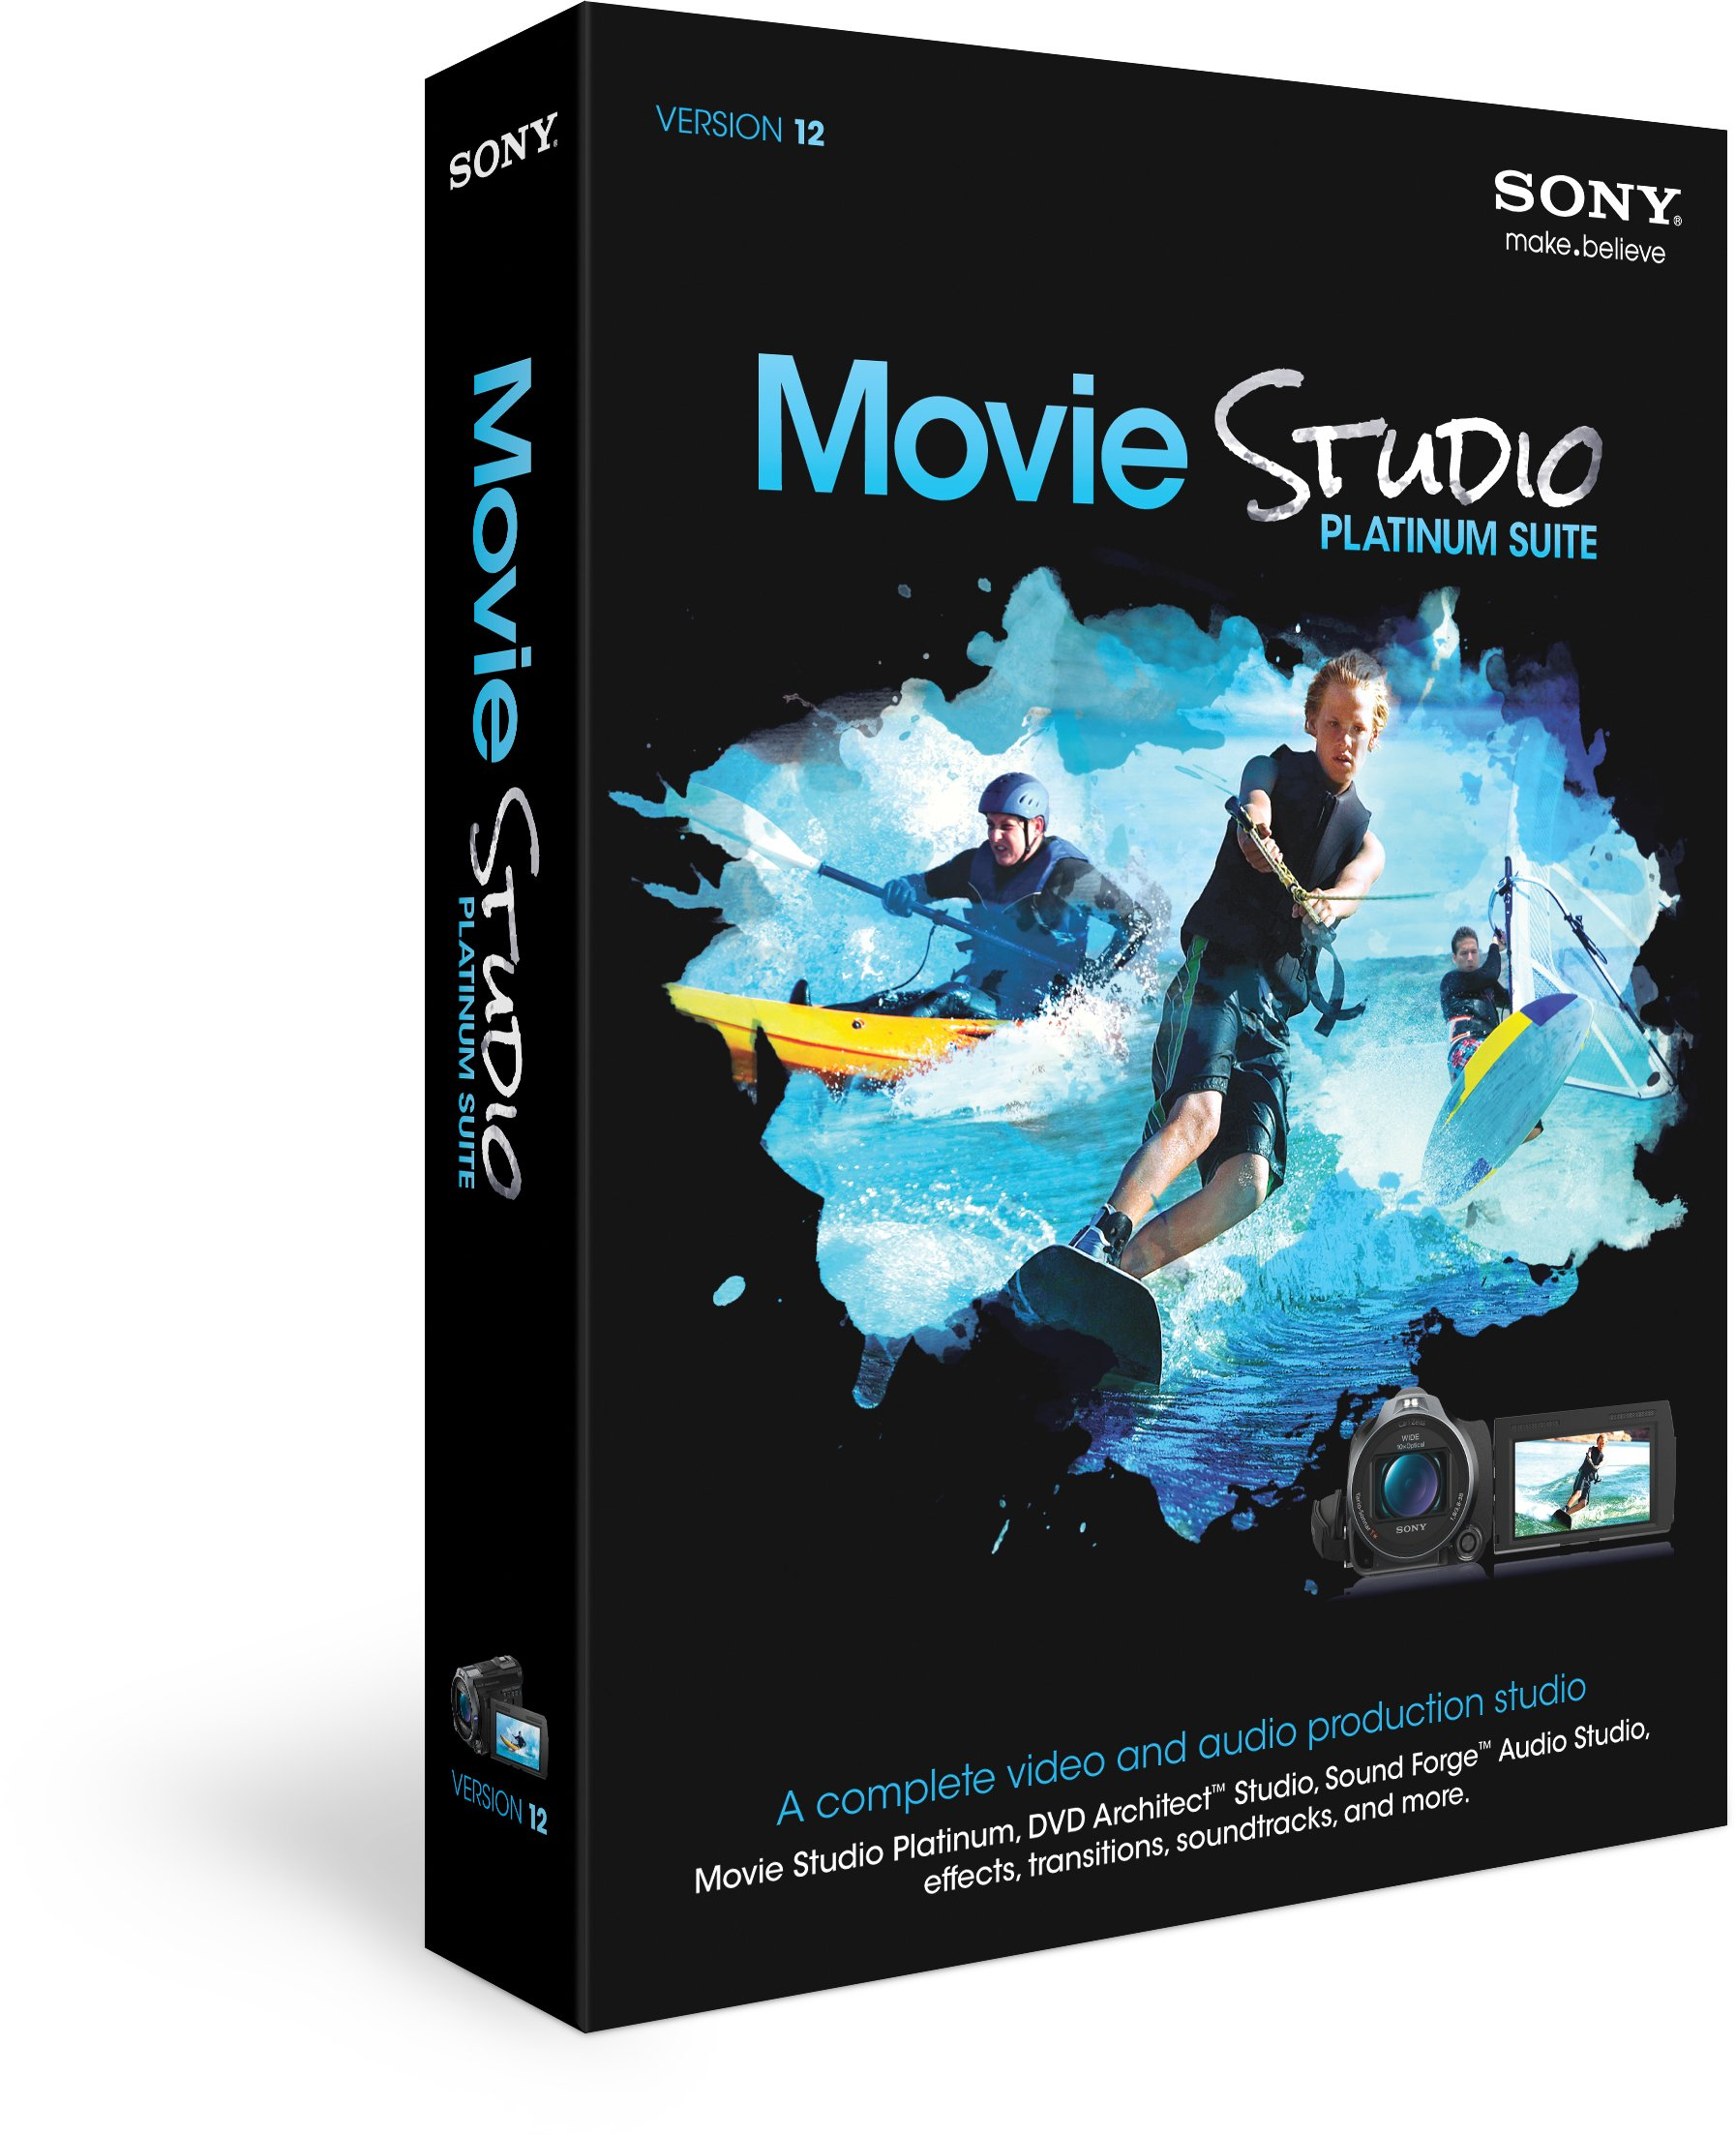 Sony Movie Studio Platinum Suite 12 by Sony